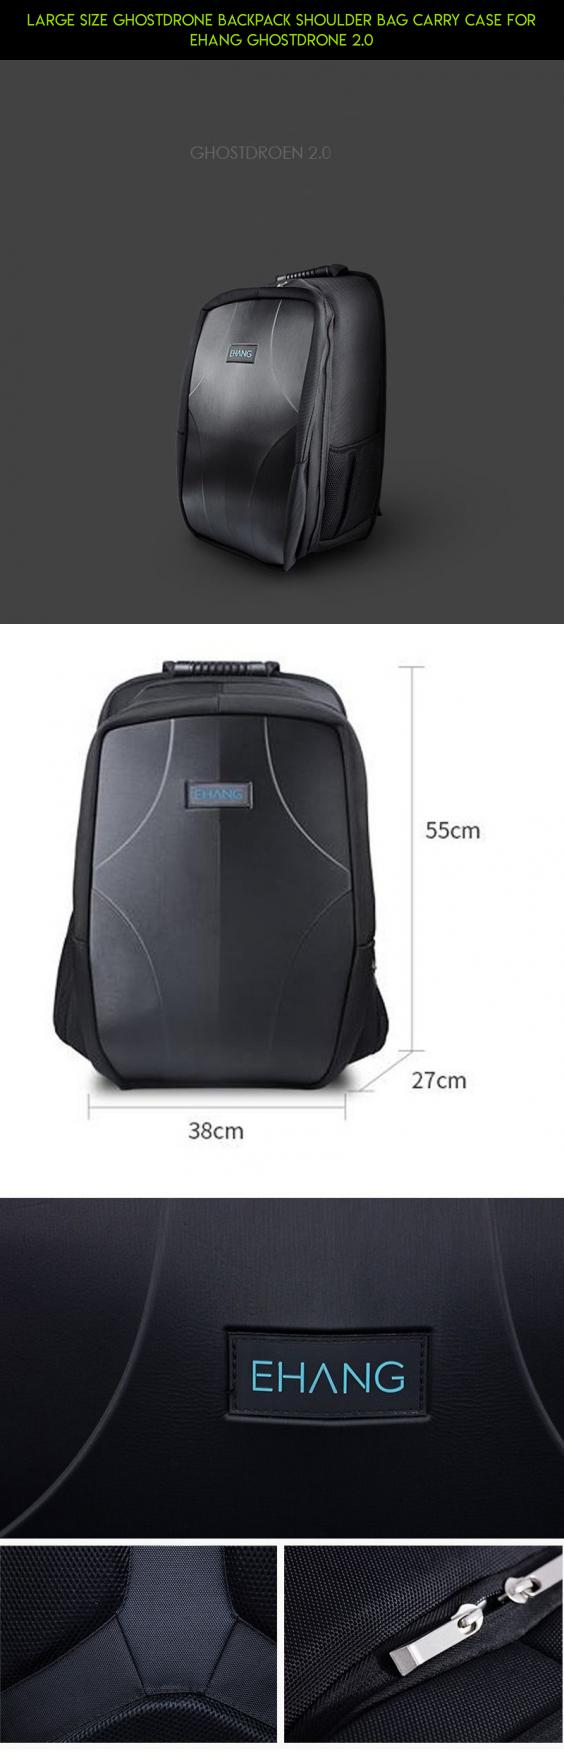 d3dfed3c3d Large Size GHOSTDRONE Backpack Shoulder Bag Carry Case for EHANG GHOSTDRONE  2.0  technology  racing  products  tech  fpv  ehang  shopping  drone   gadgets ...